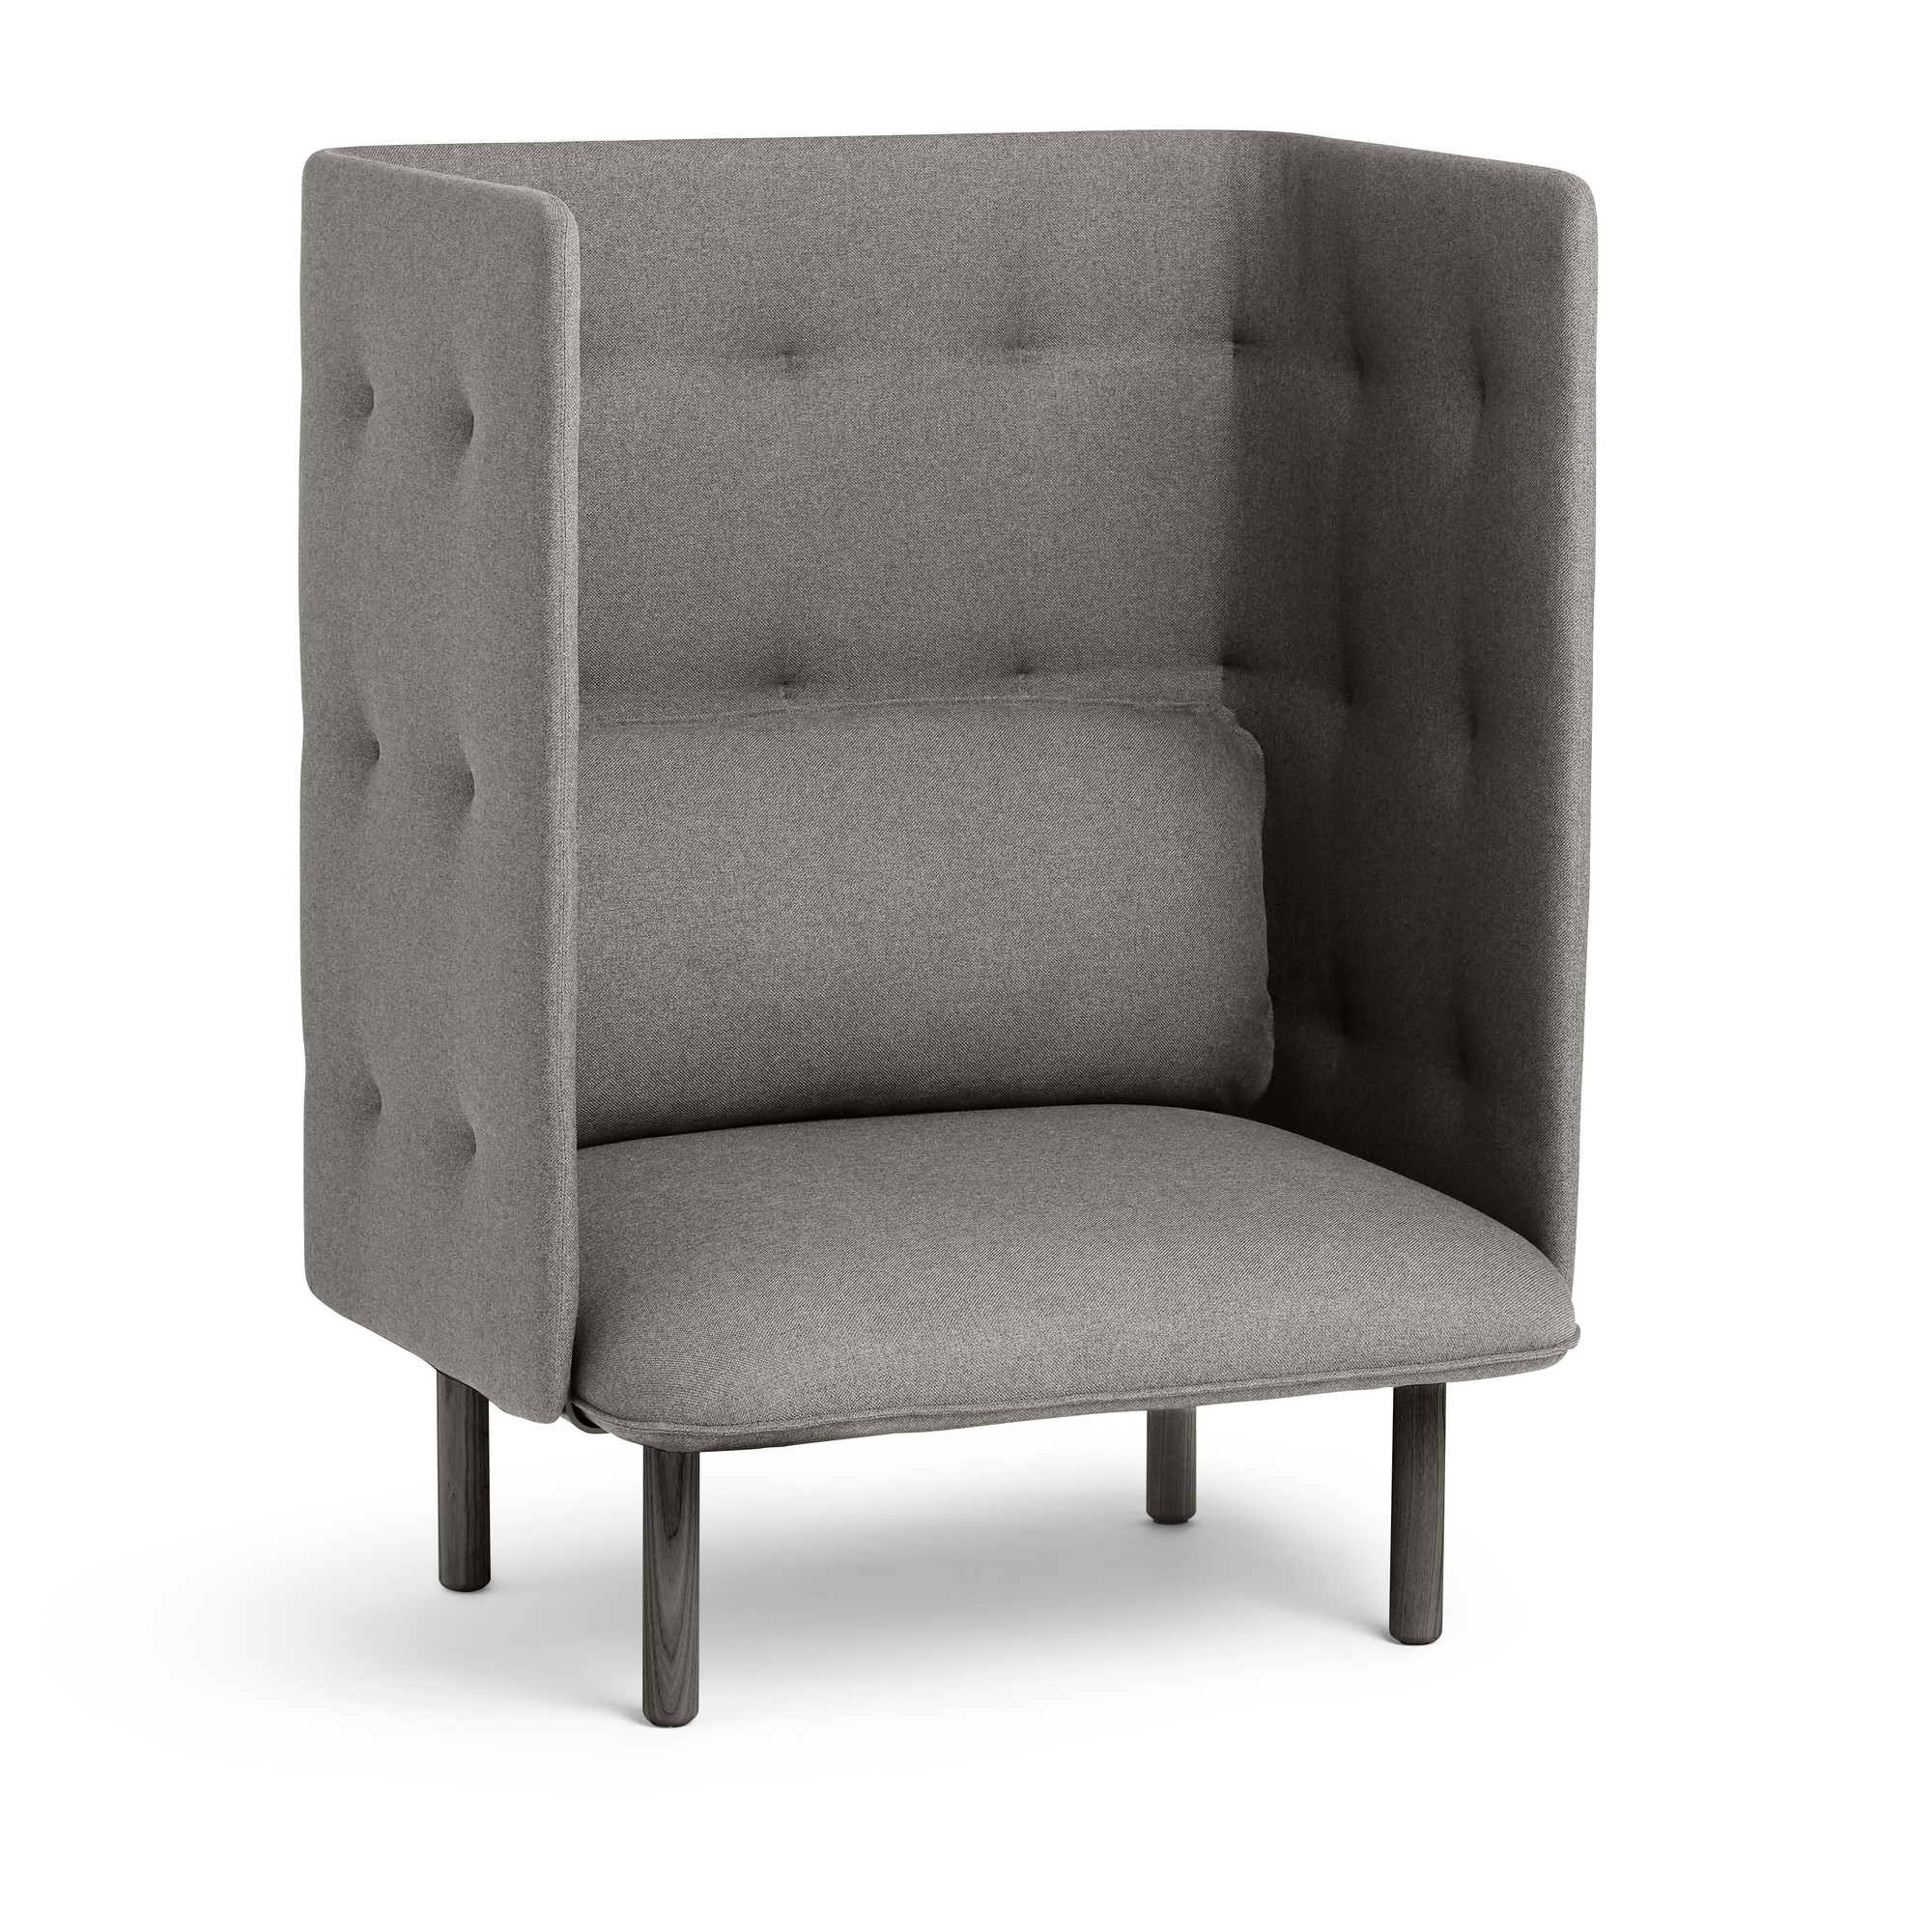 Attirant Gray QT Privacy Lounge Chair,Gray,hi Res. Loading Zoom